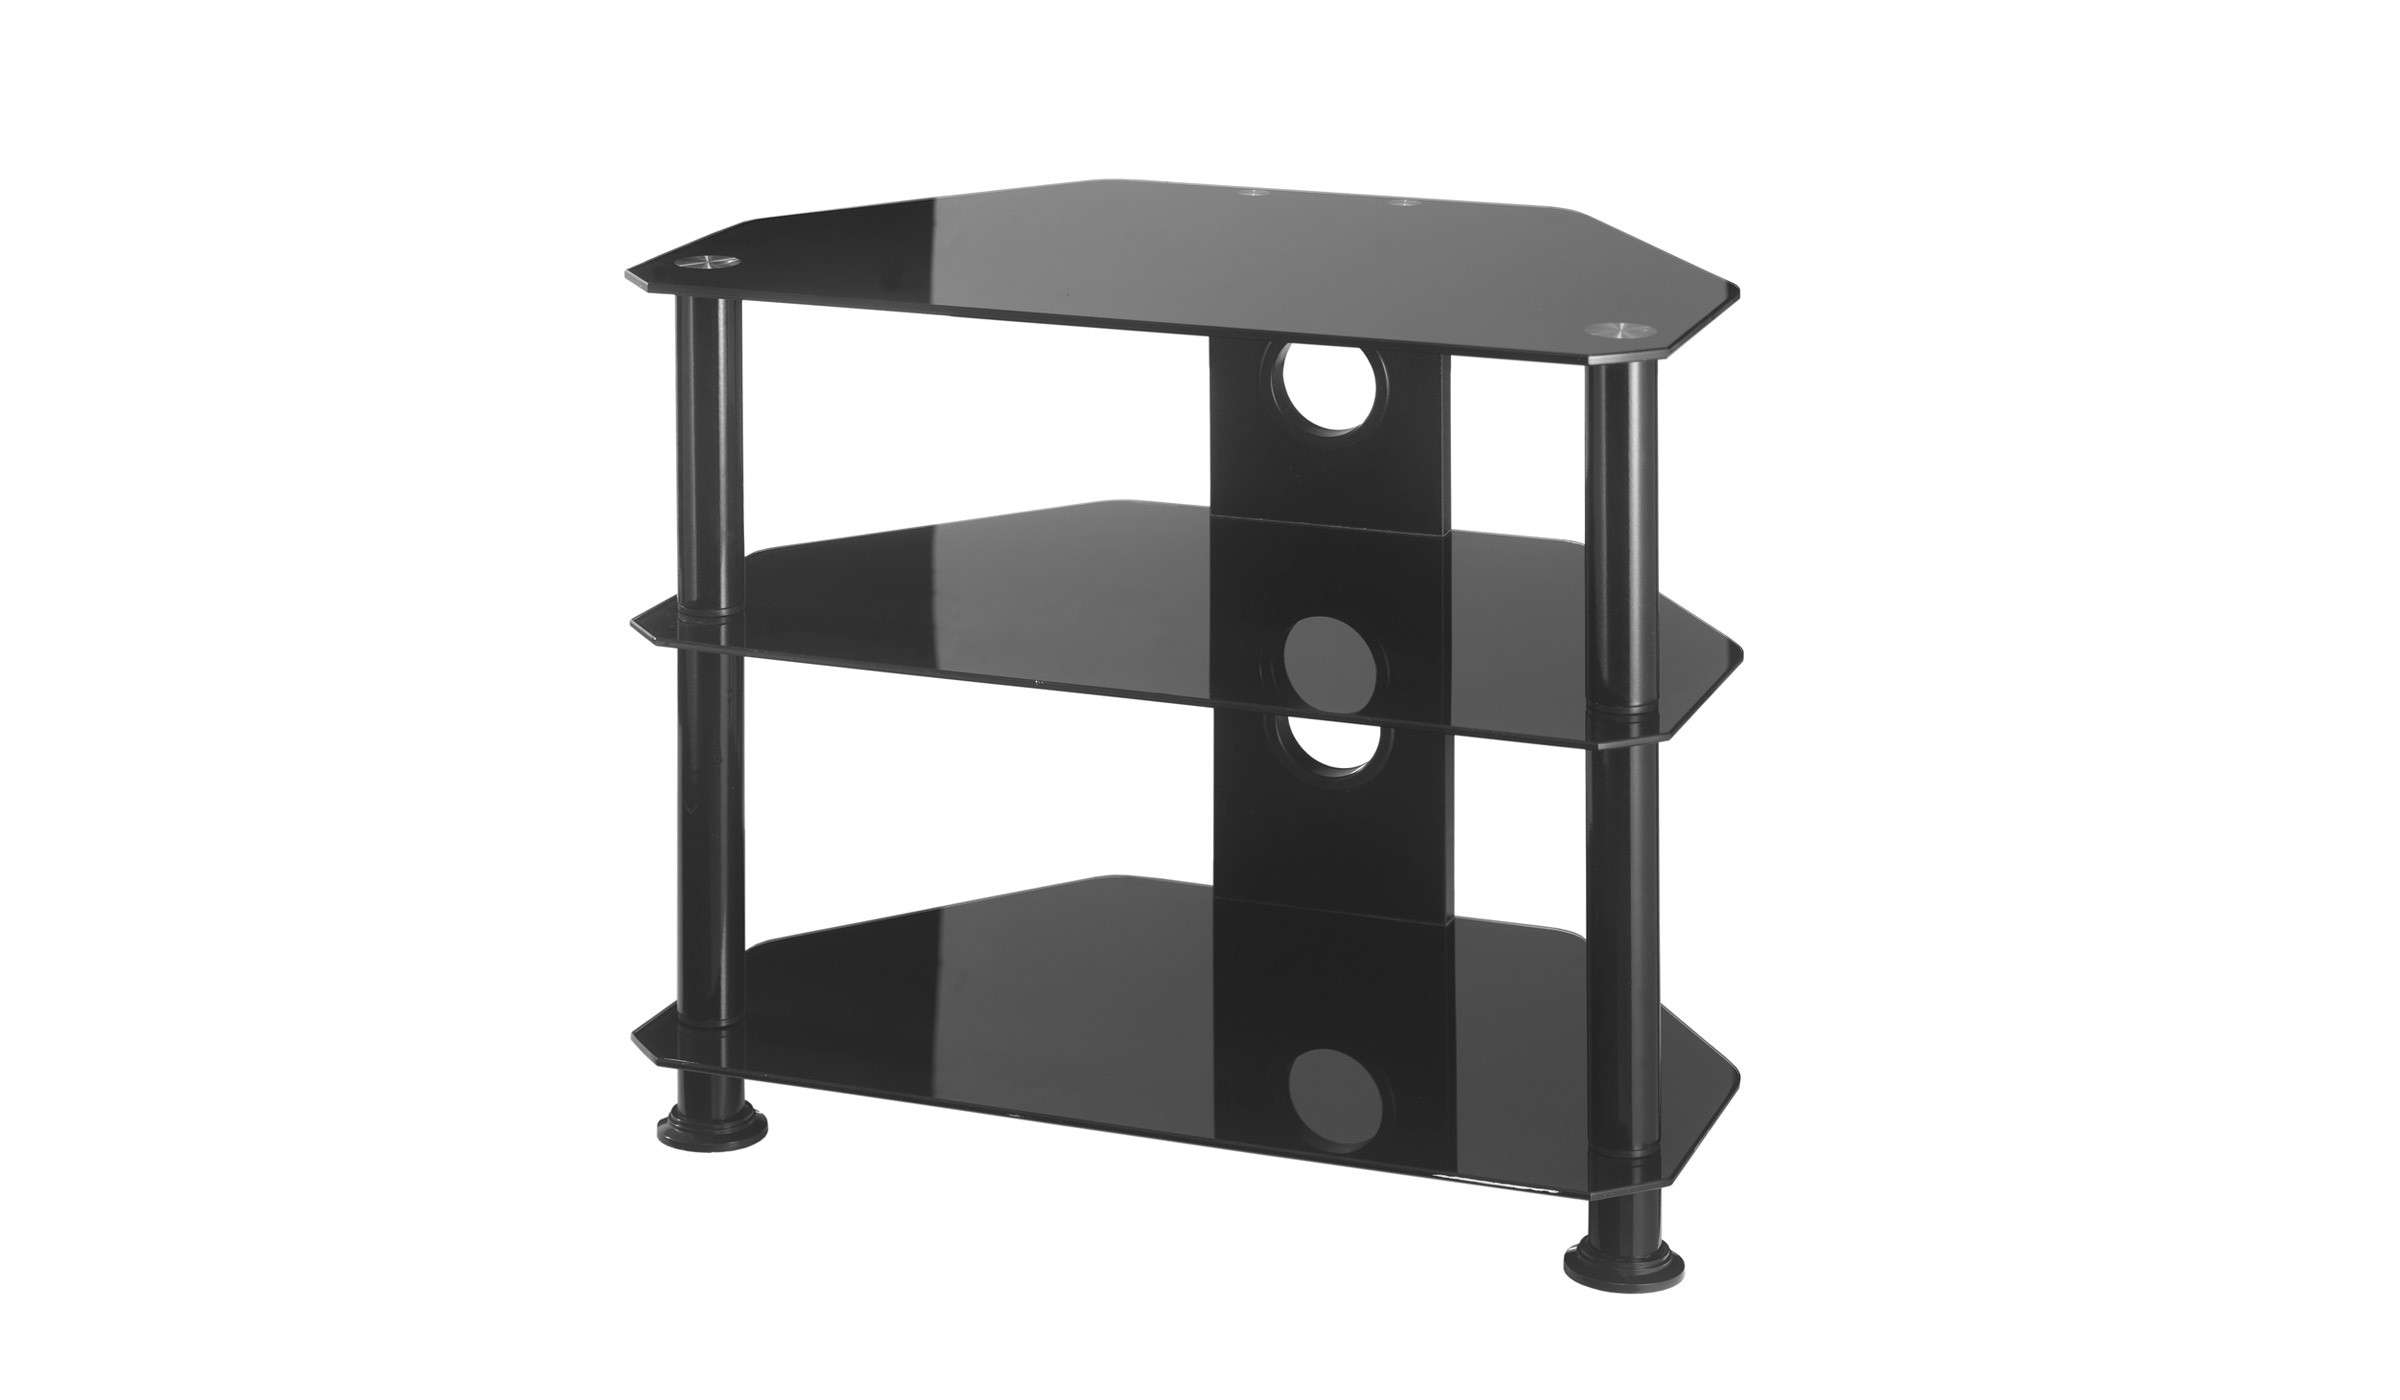 Small Glass Corner Tv Stand Up To 26 Inch Tv | Mmt Db600 In Black Glass Tv Stands (View 13 of 15)